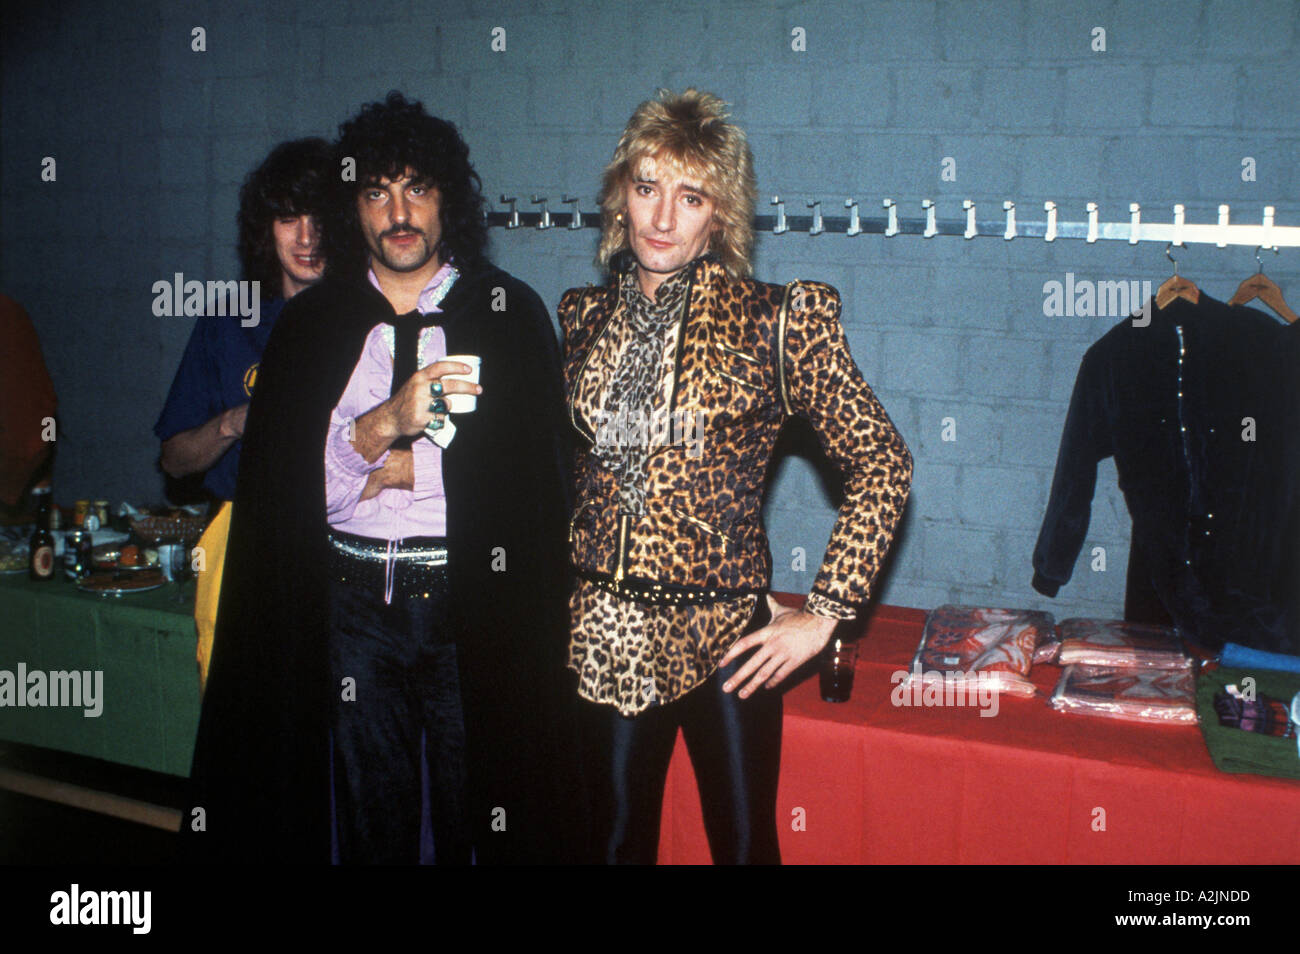 ROD STEWART and the Faces backstage in 1978 - Stock Image